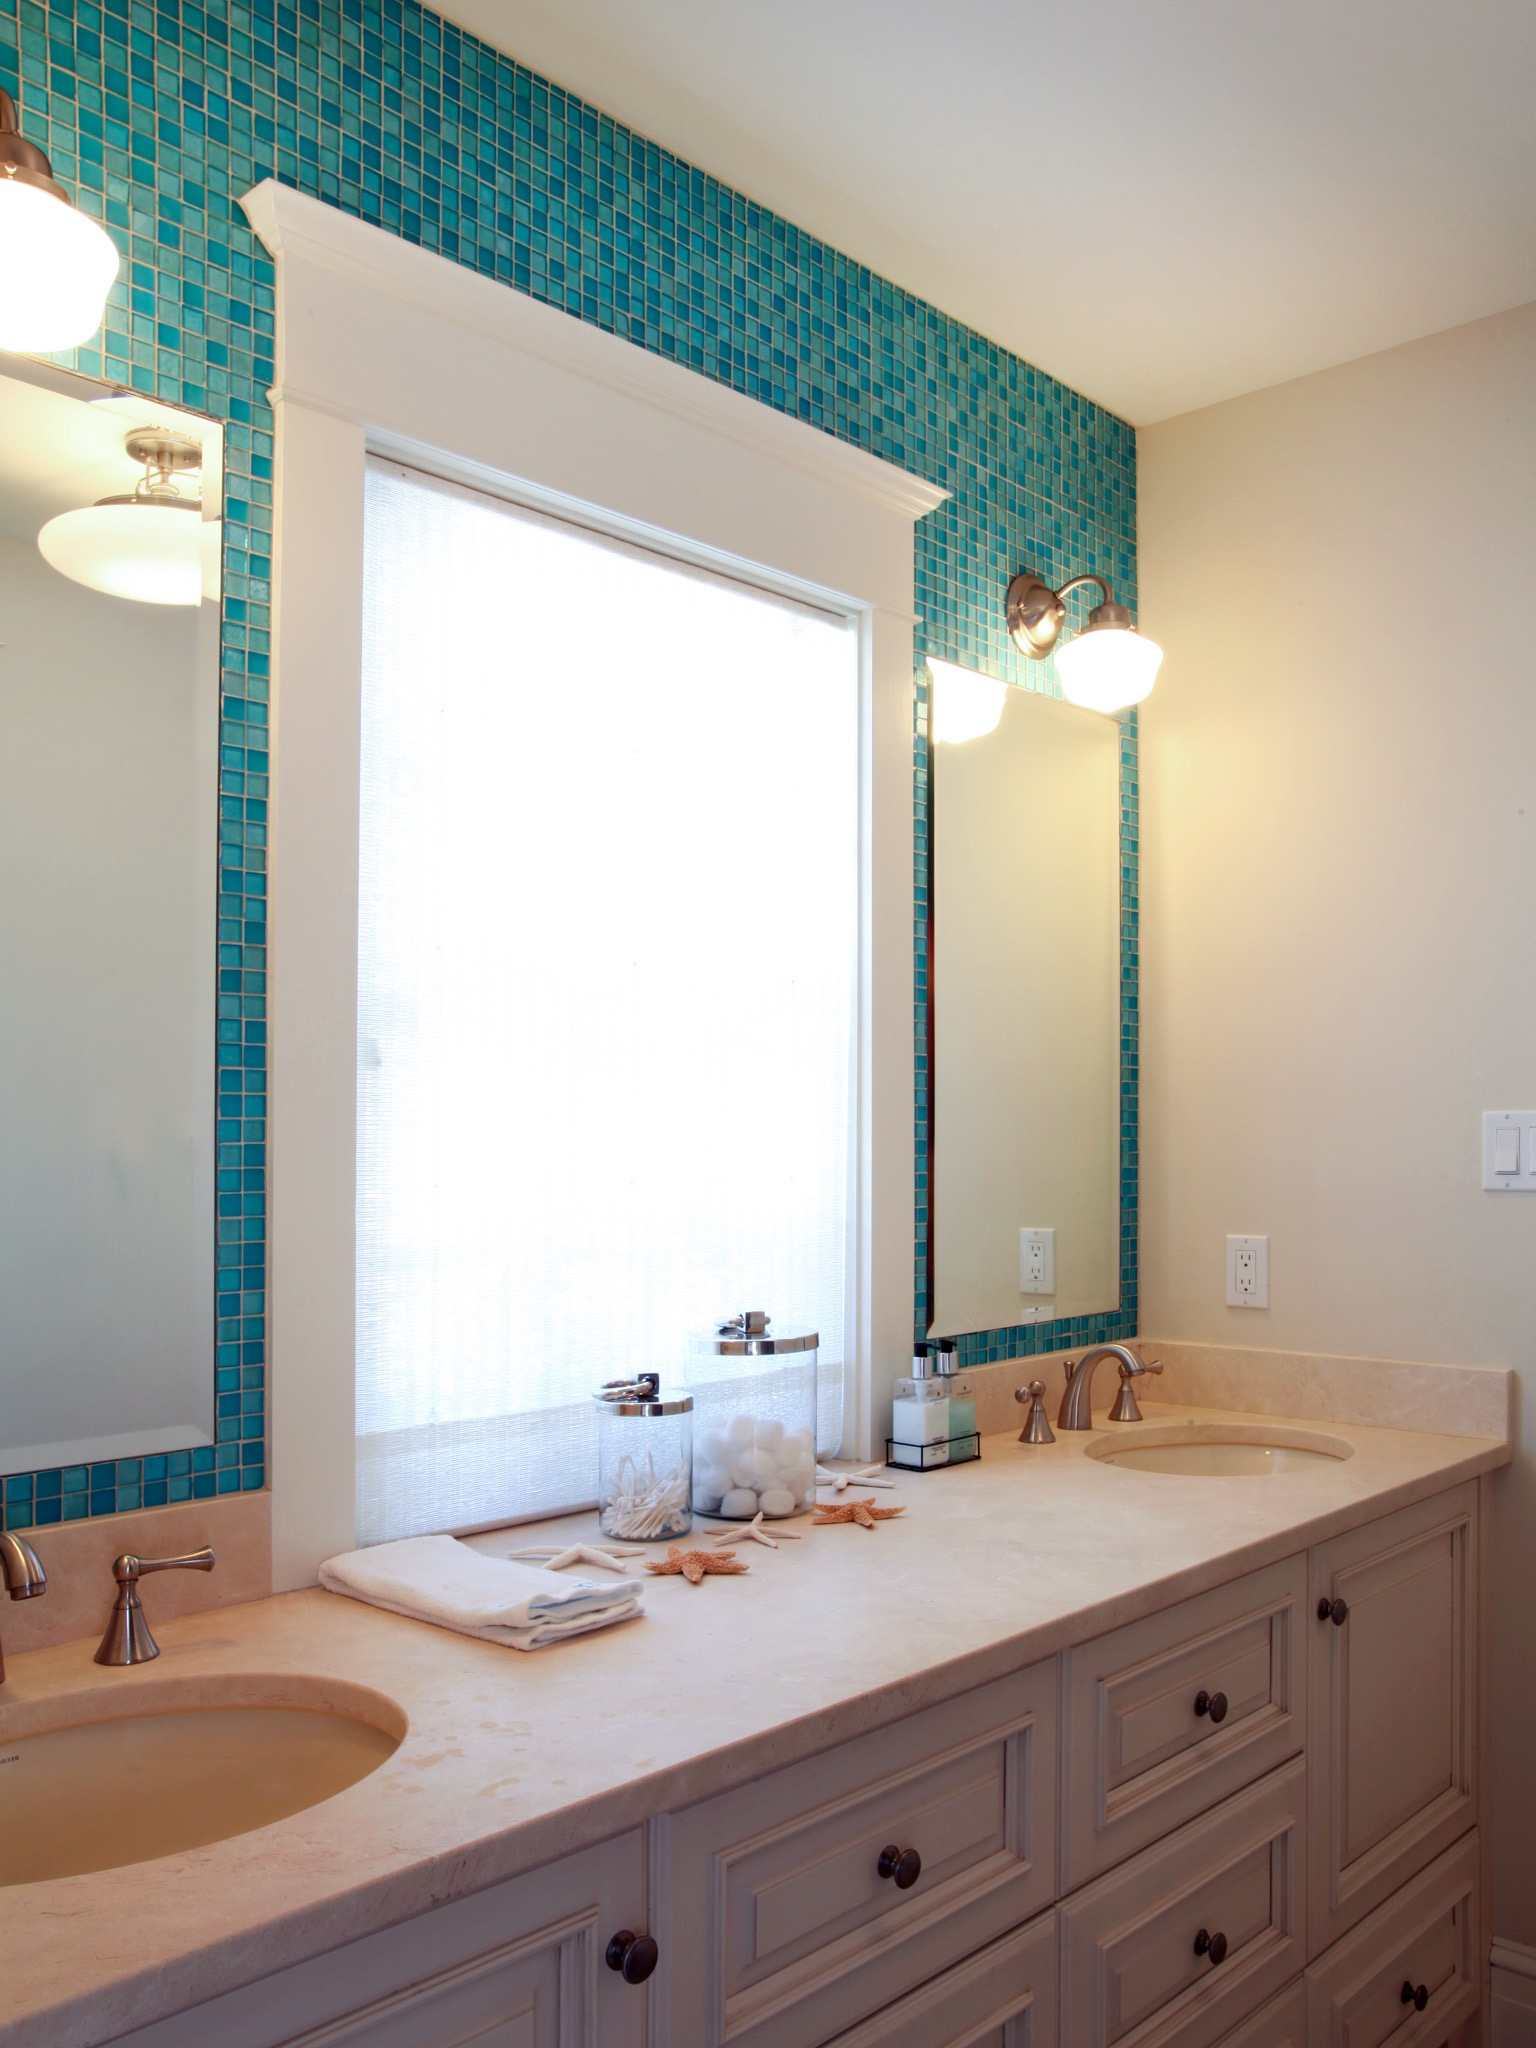 Modern Blue Mosaic Tile Bathroom Gallery - Bathroom Design Ideas ...